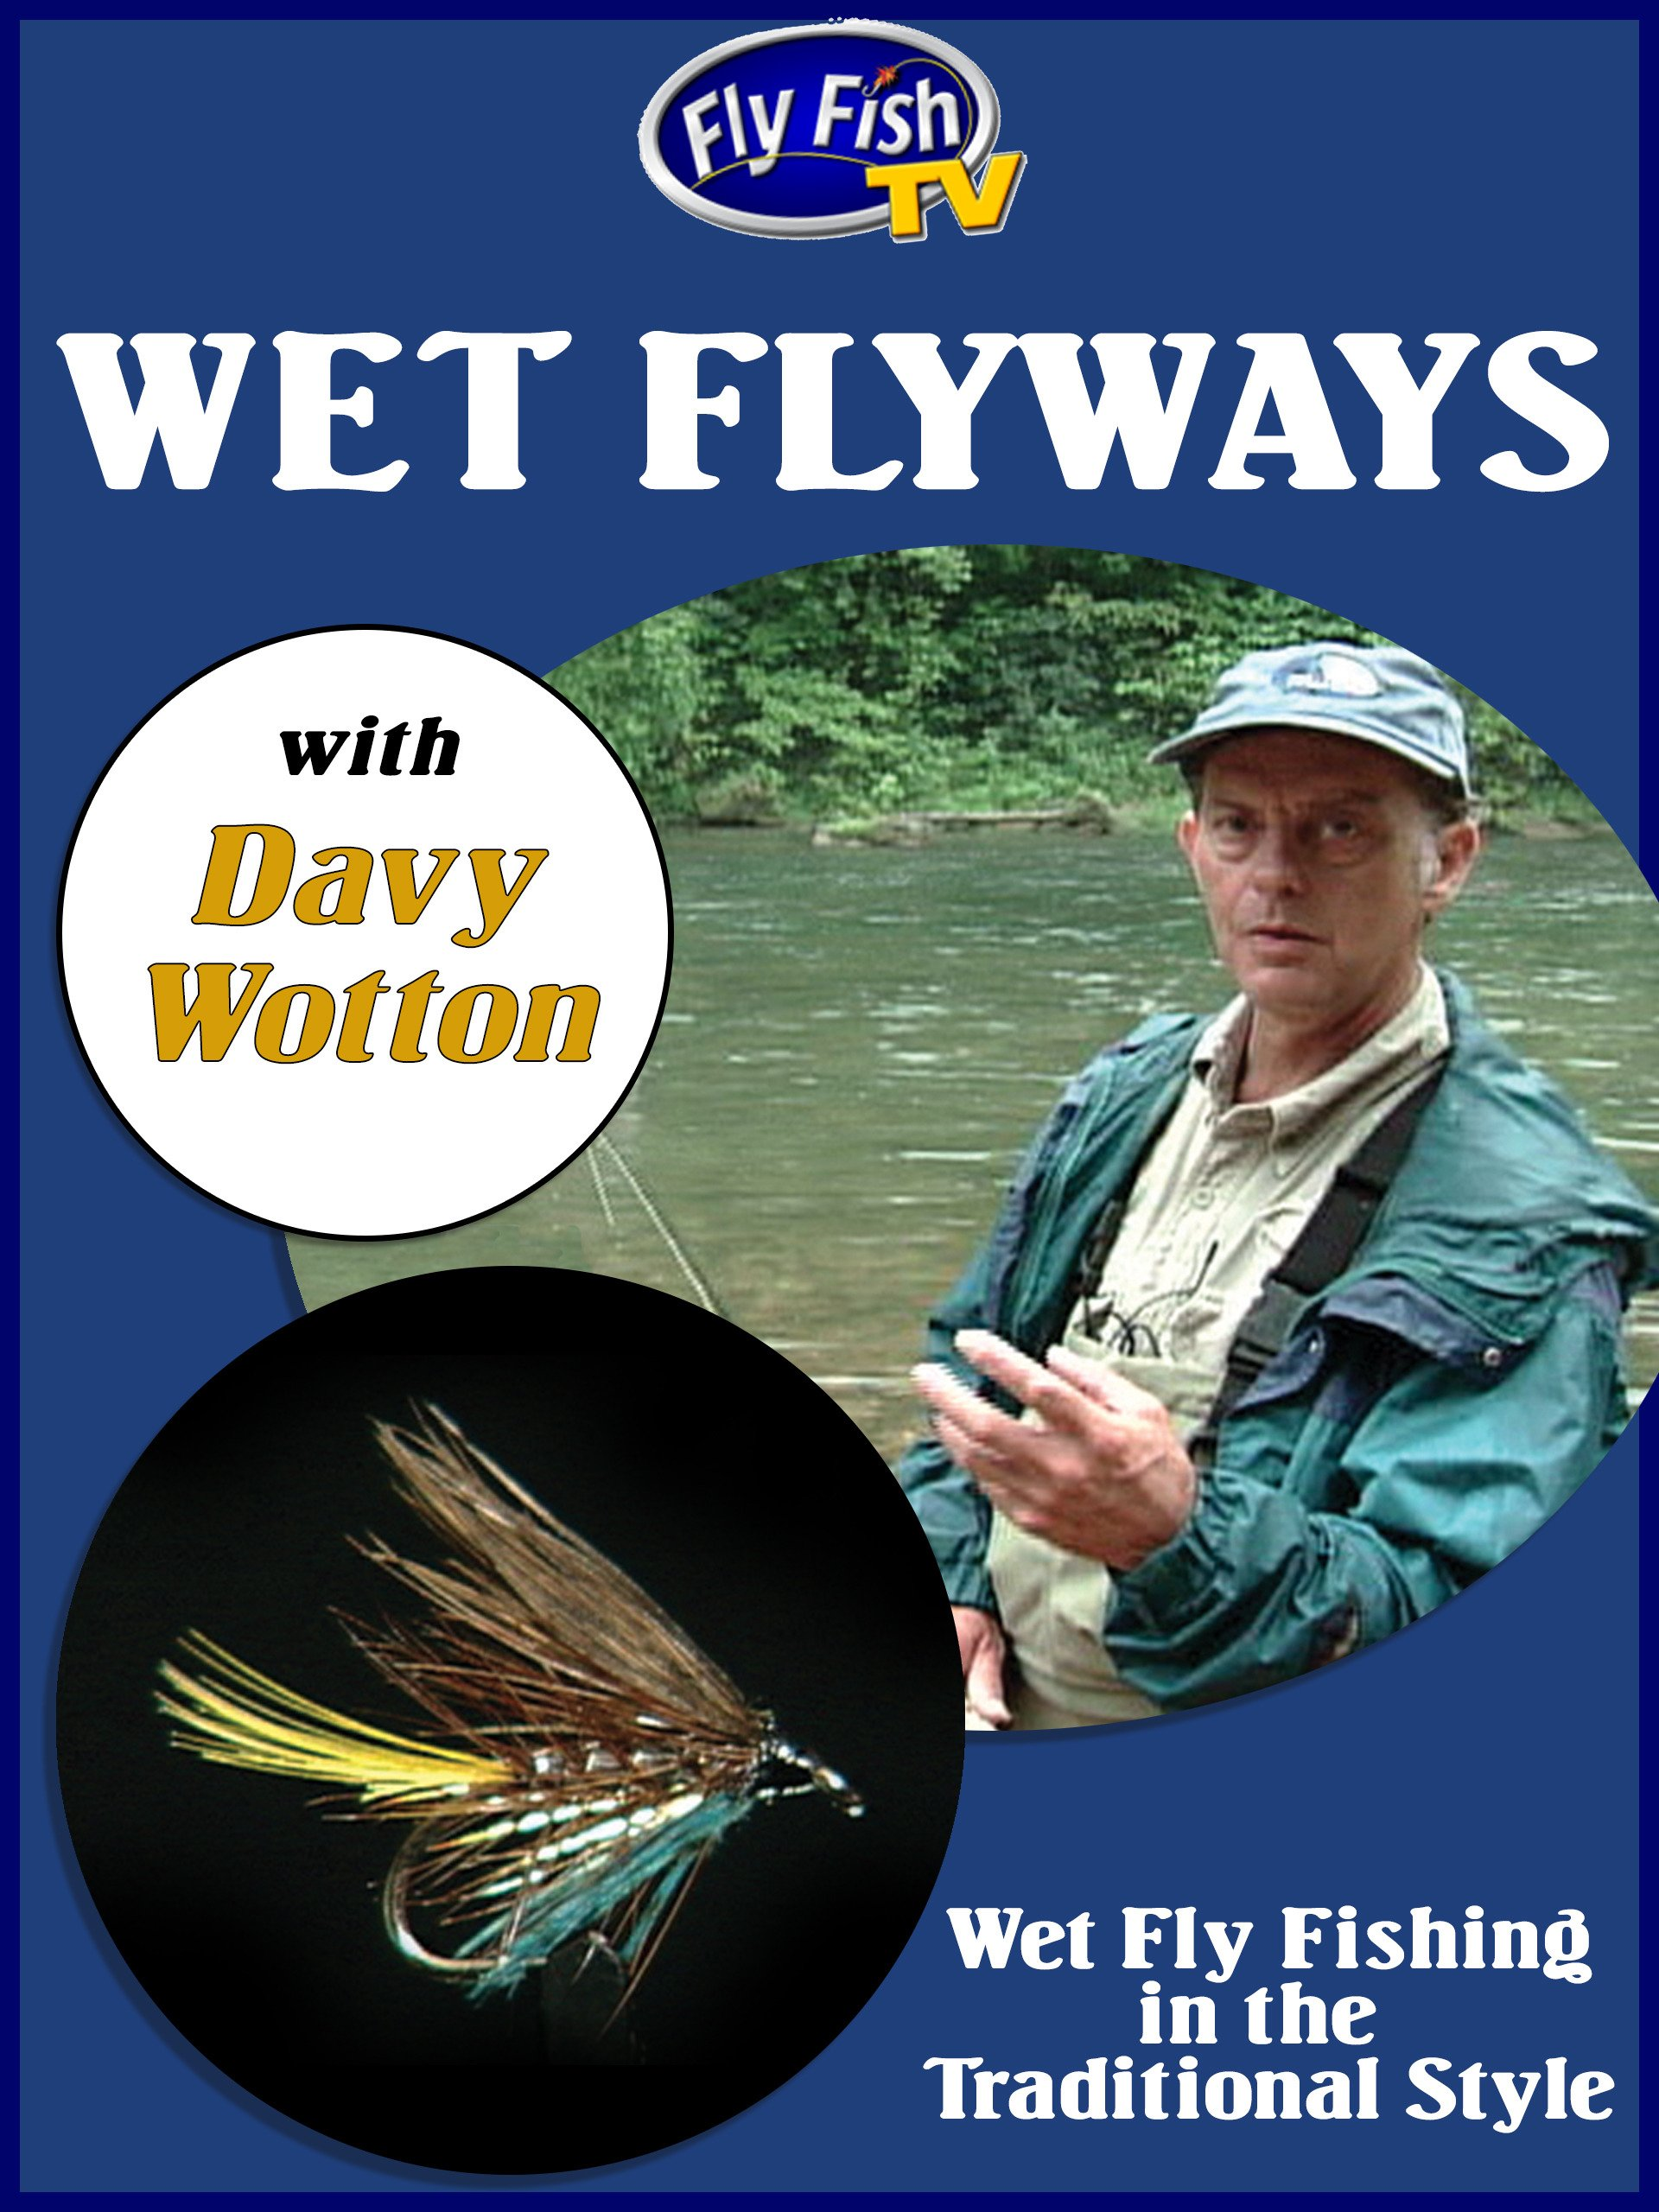 Wet Fly Ways with Davy Wotton on Amazon Prime Video UK